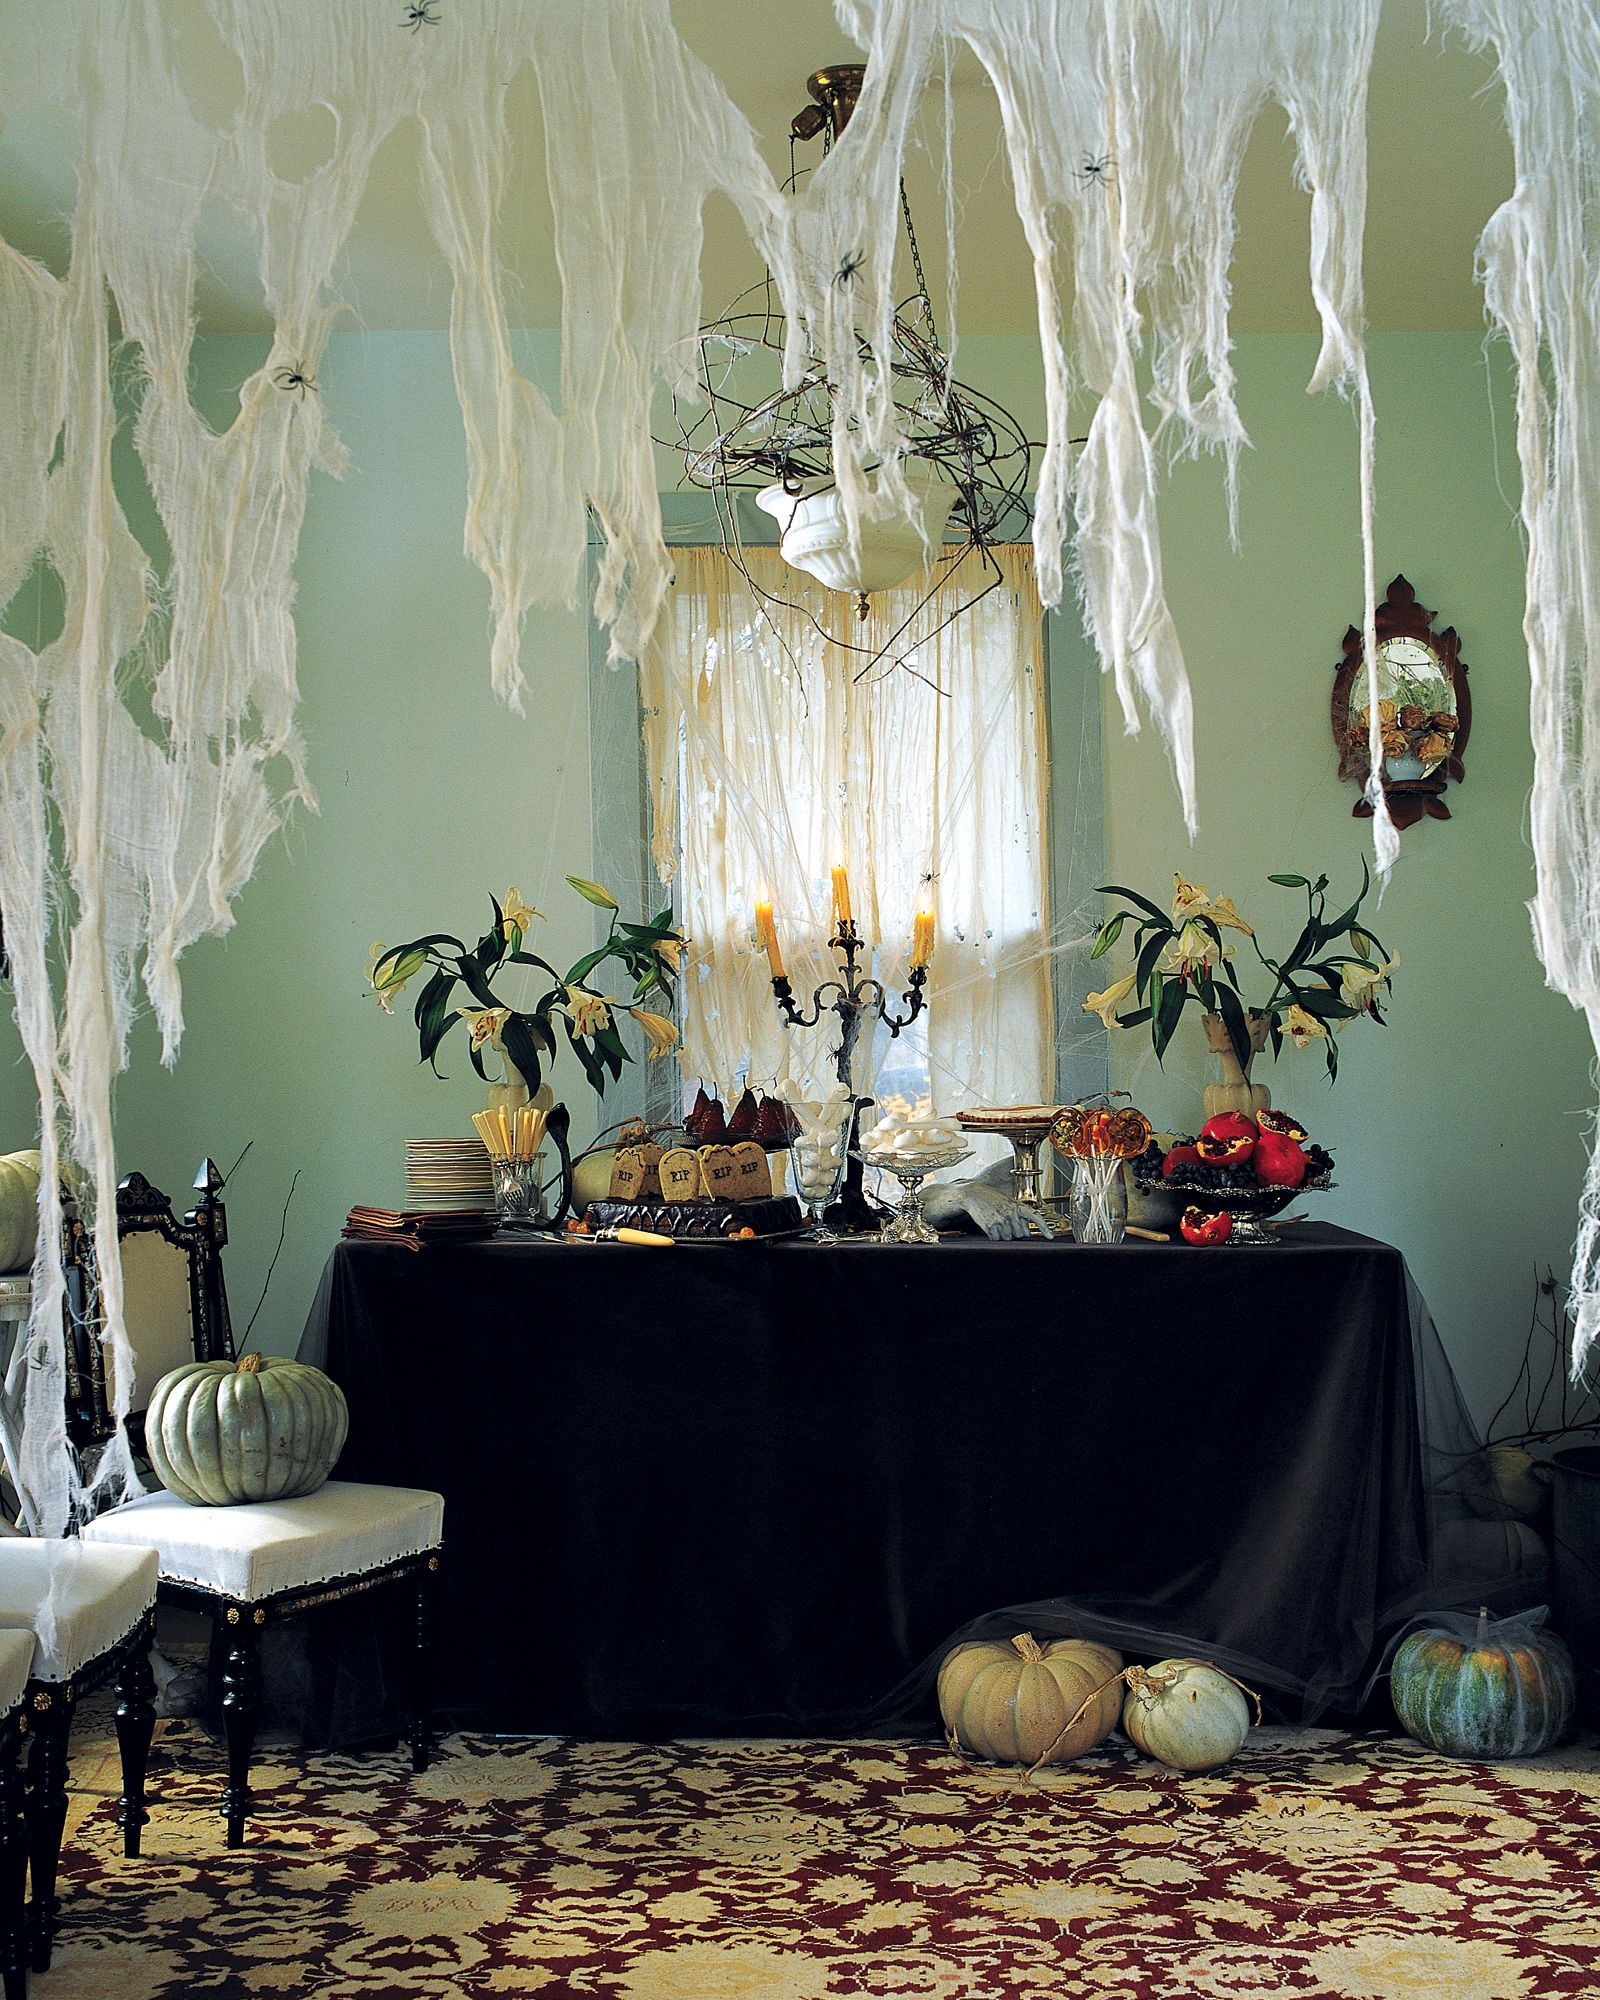 20 Of Our Best Indoor Halloween Decorations Halloween Party Diy Halloween Party Themes Easy Halloween Party